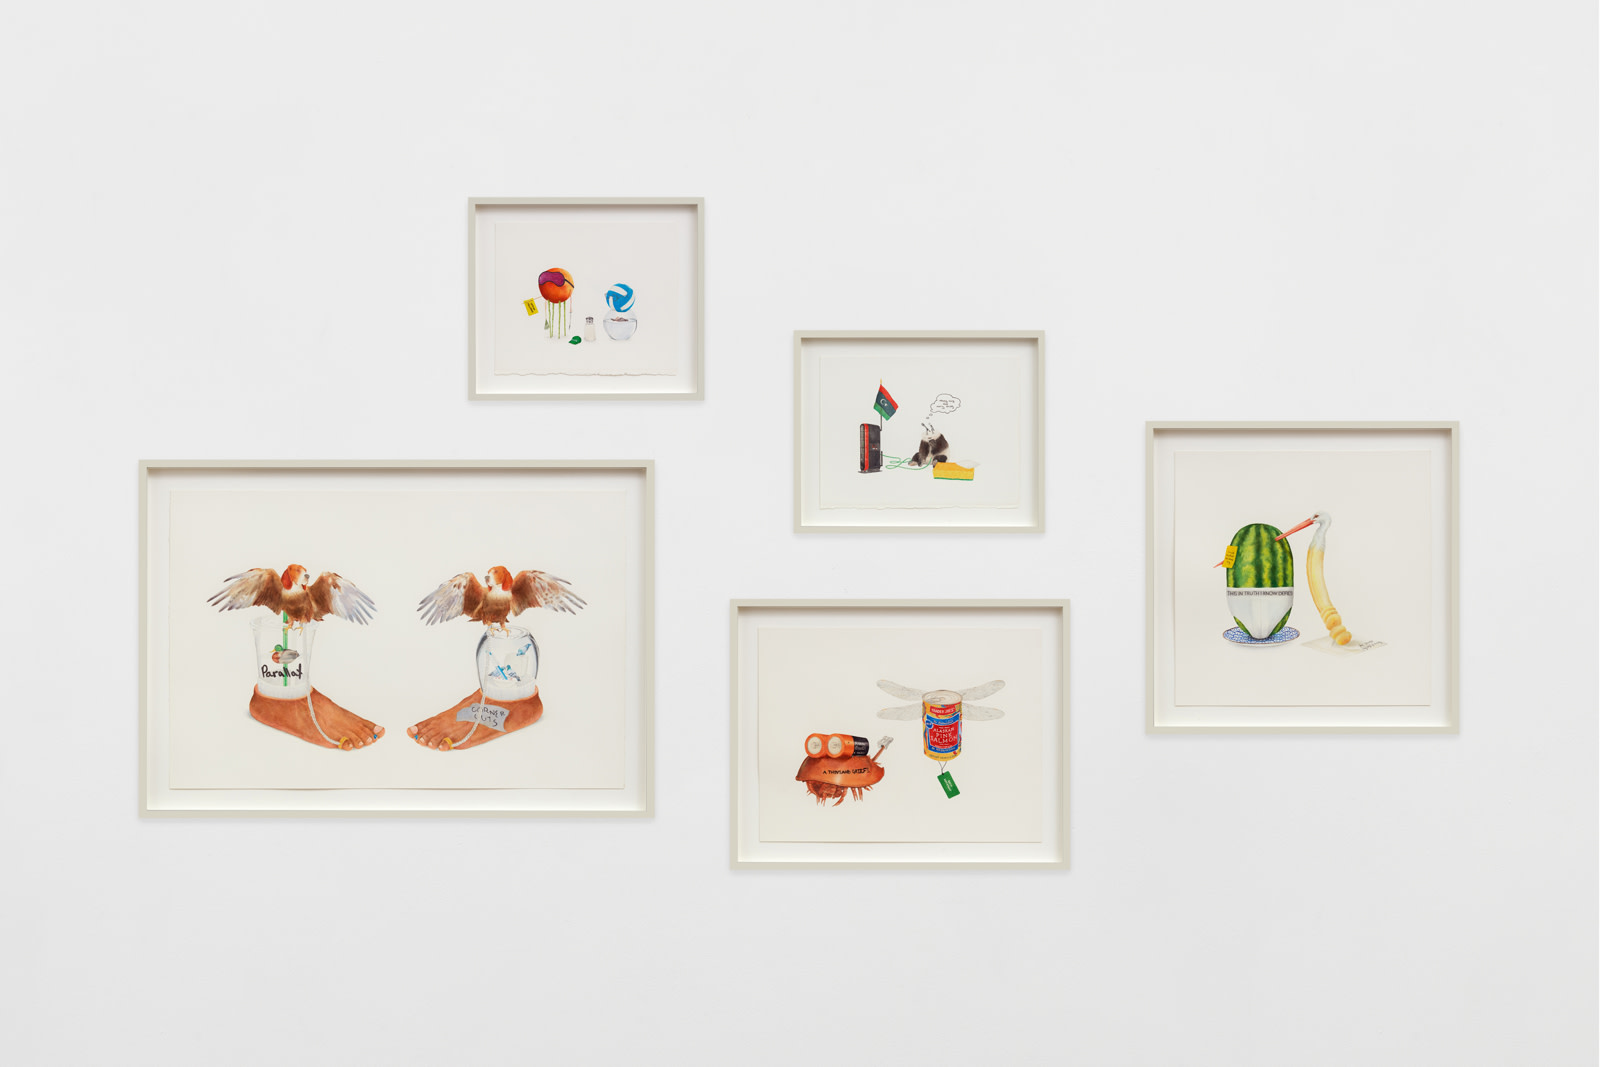 "<div class=""artwork_caption""><p><i>Scott Mendes, Star Alliance Suite #2</i></p><p>watercolour and graphite on paper</p><p>5 framed drawings, clockwise:<br />38 x 44.1 x 3.8 cm / 15 x 17 ⅜ x 1 ½ in<br />38 x 47.6 x 3.8 cm / 15 x 18 ¾ x 1 ½ in<br />53.5 x 53.5 x 3.8 cm / 21 ⅛ x 21 ⅛ x 1 ½ in<br />47.5 x 59.5 x 3.8 cm / 18 ¾ x 23 ⅜ x 1 ½ in<br />49.8 x 85.6 x 3.8 cm / 19 ⅝ x 33 ¾ x 1 ½ in</p></div>"